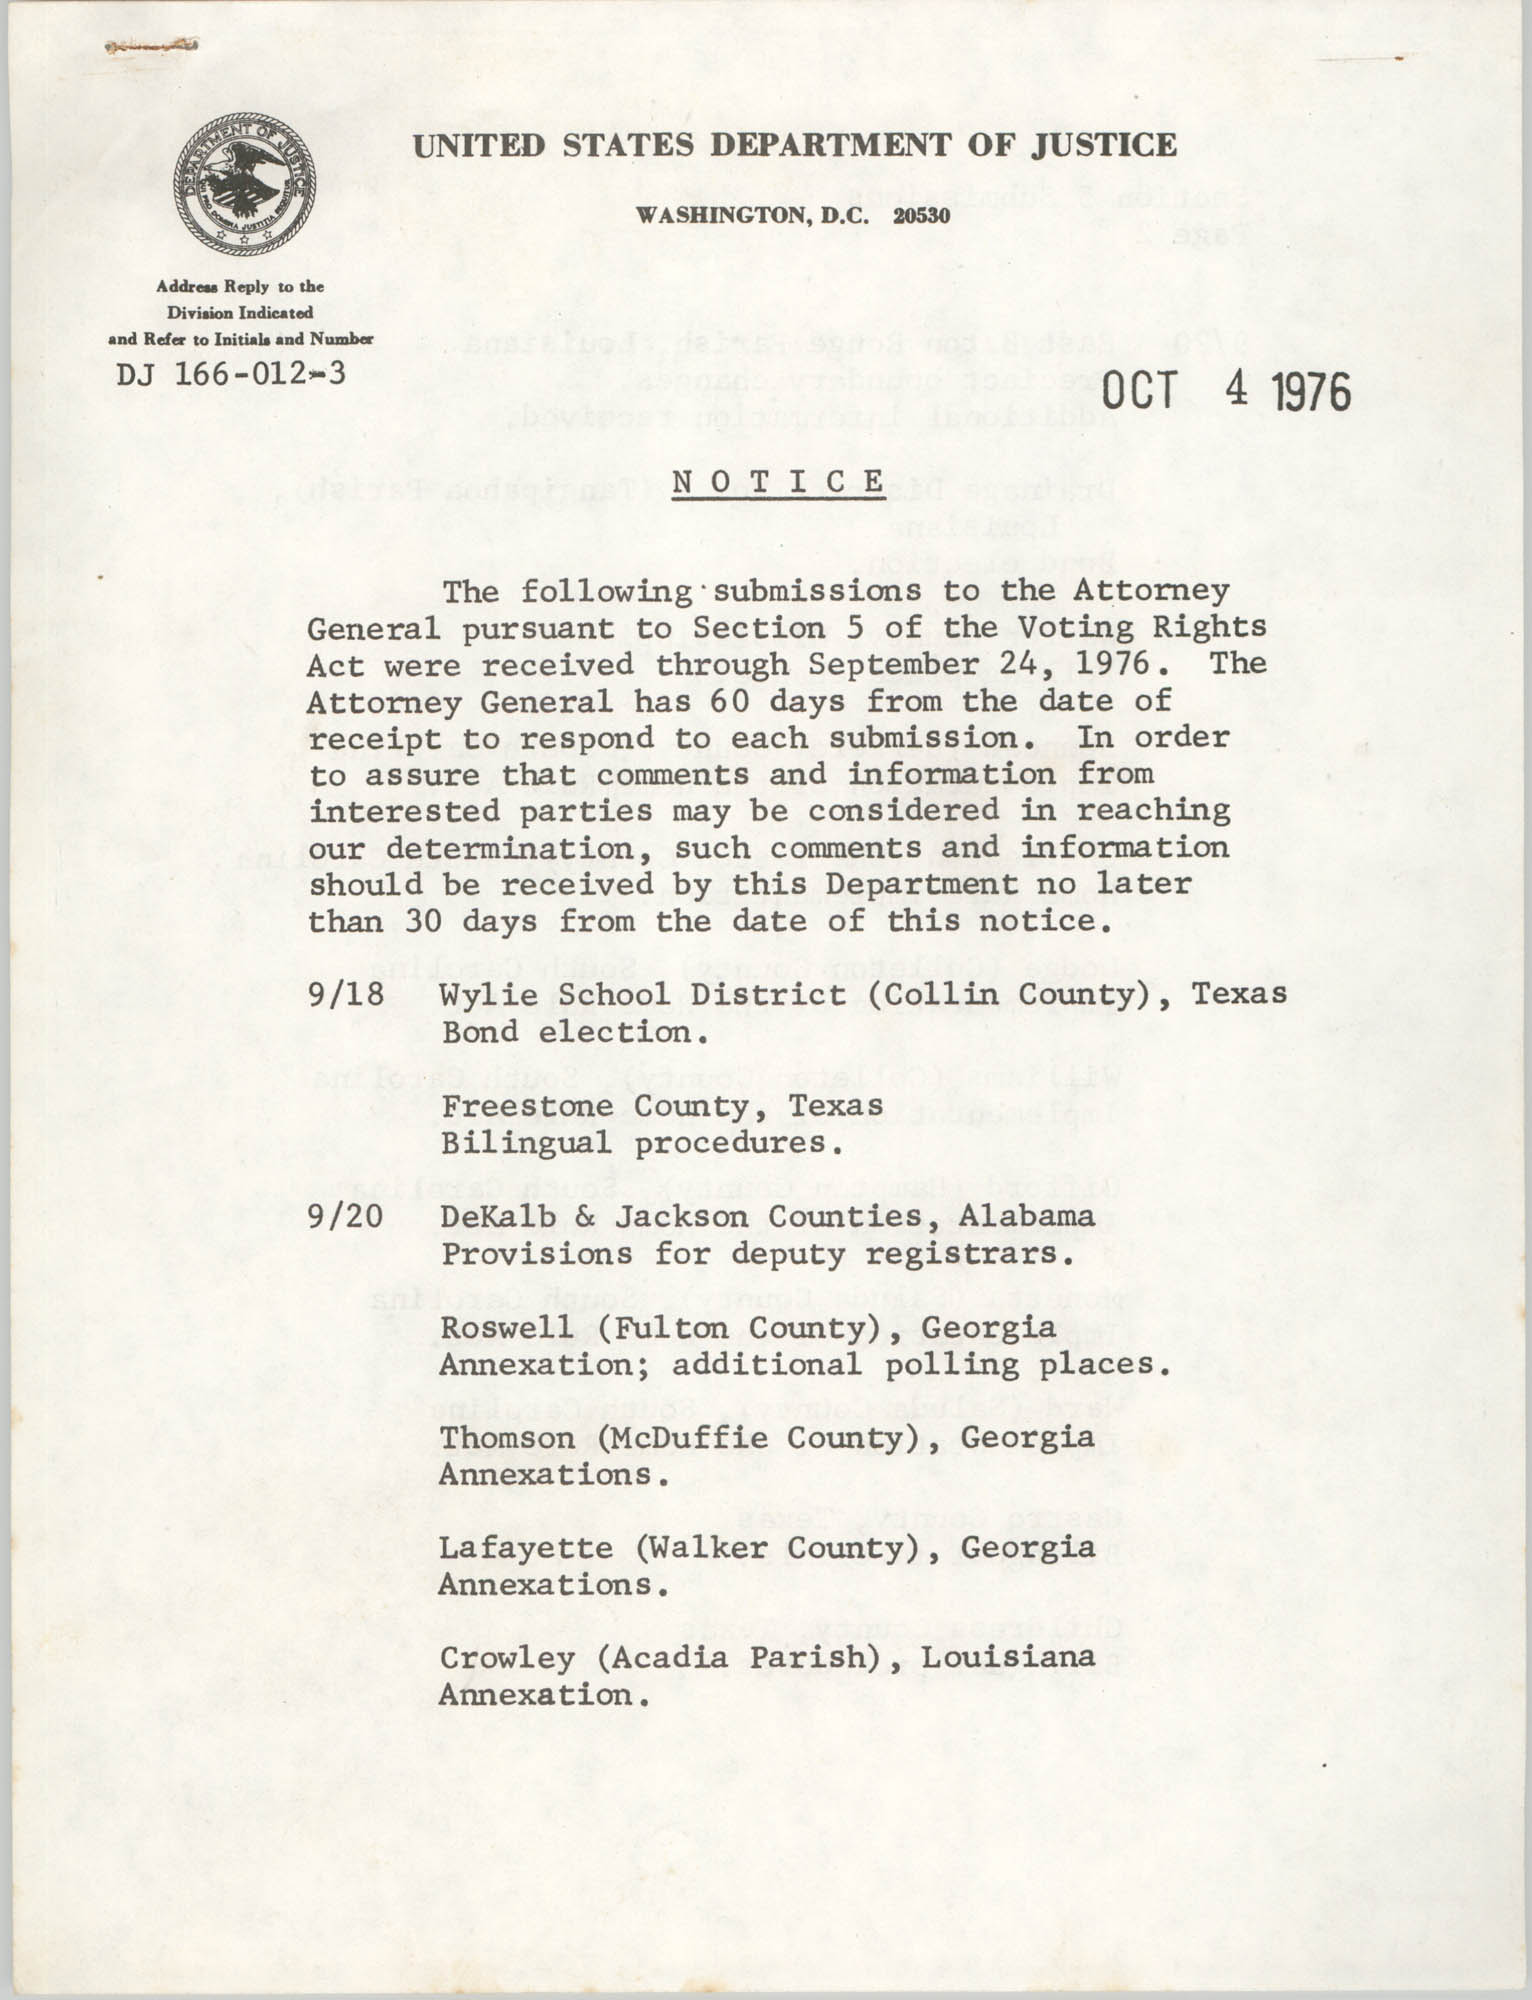 United States Department of Justice Notice, October 4, 1976